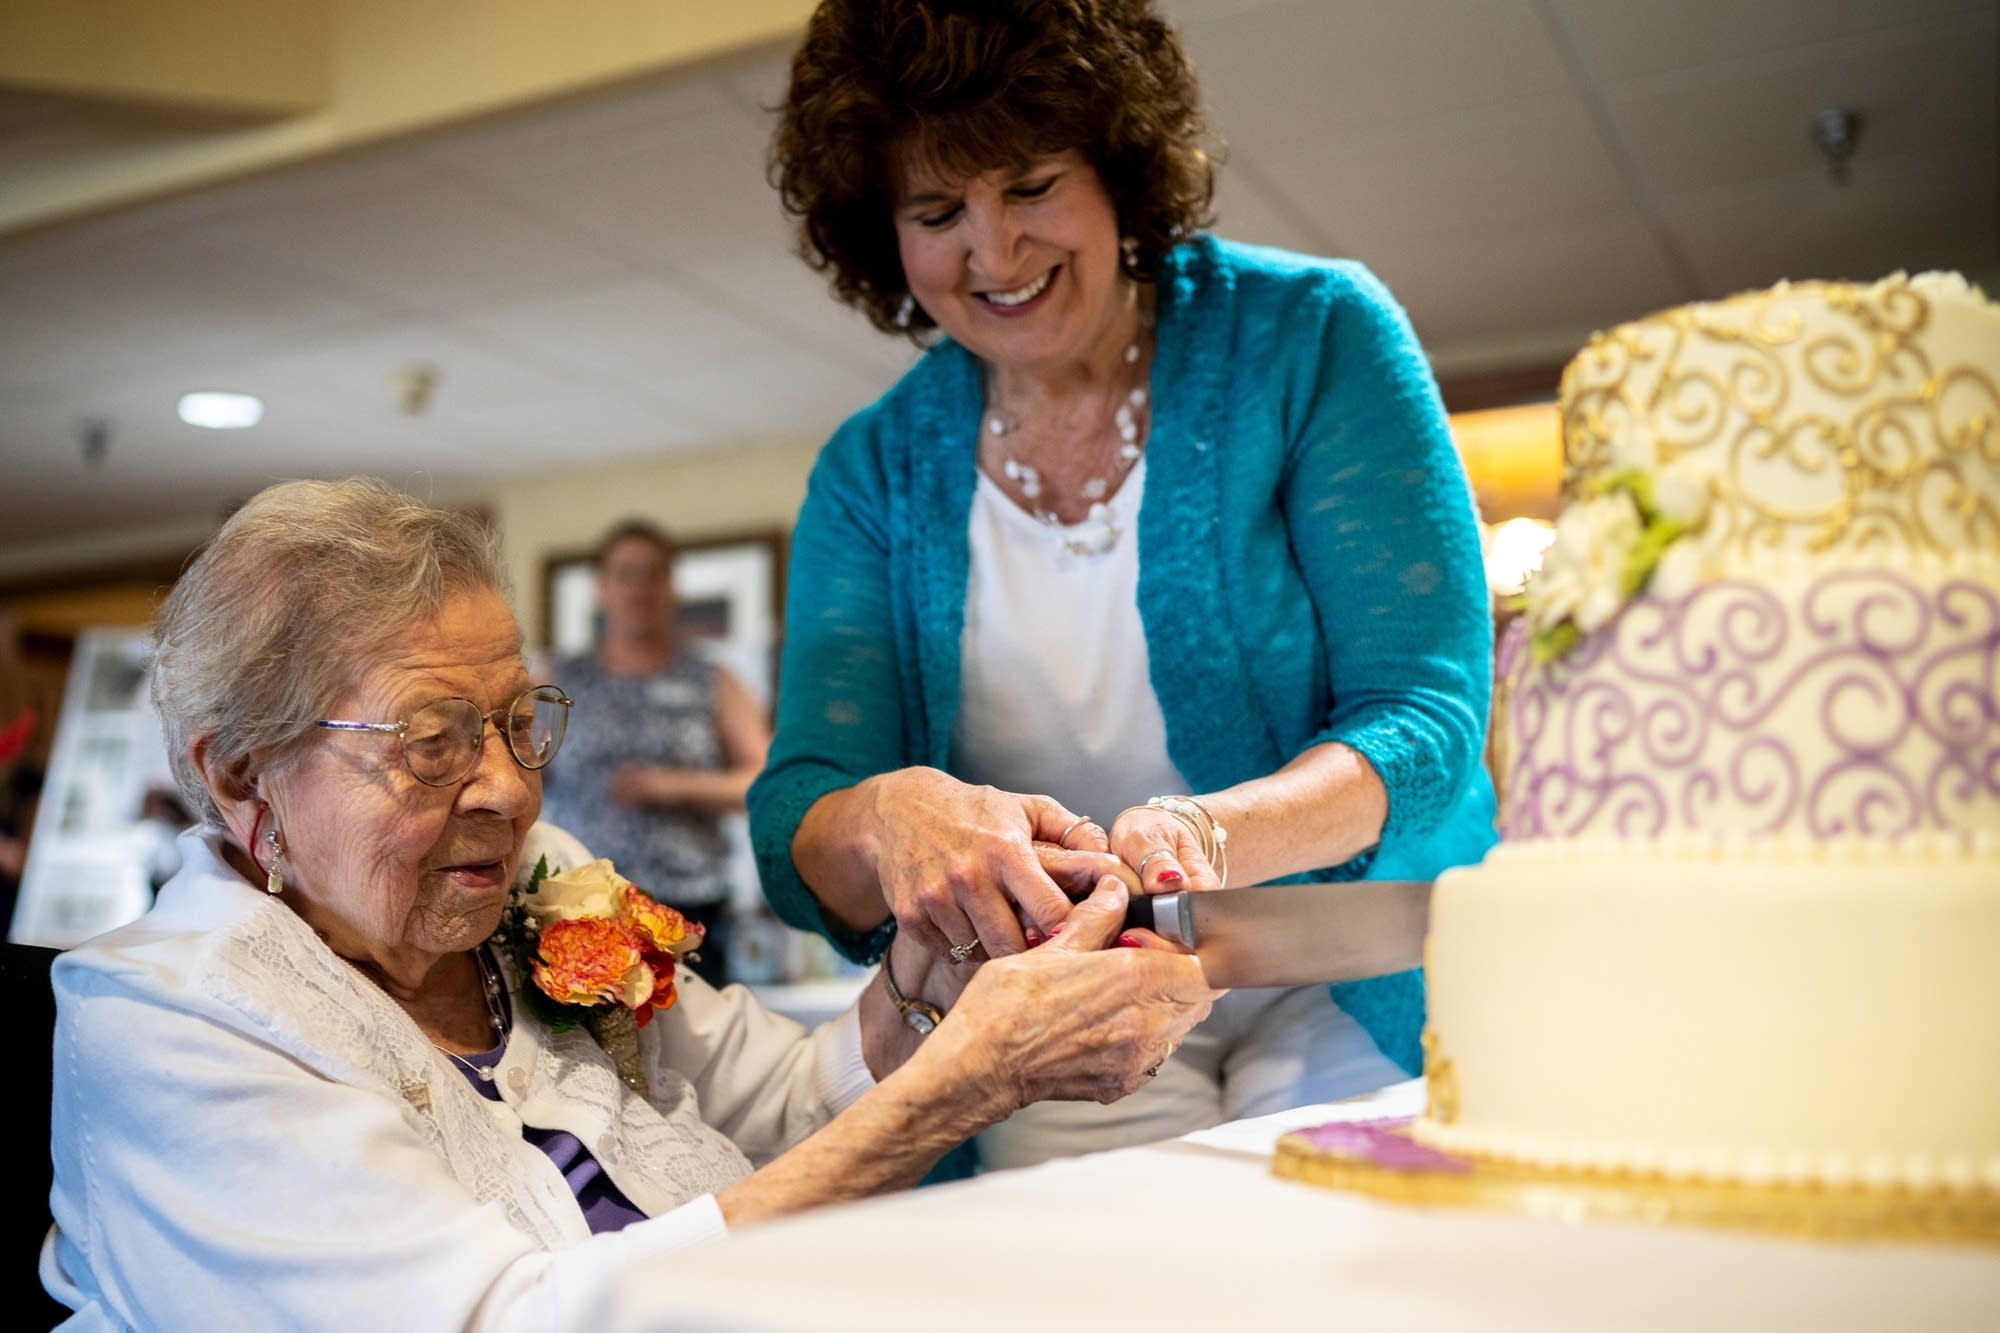 Evelyn Kleine cuts into her birthday cake.